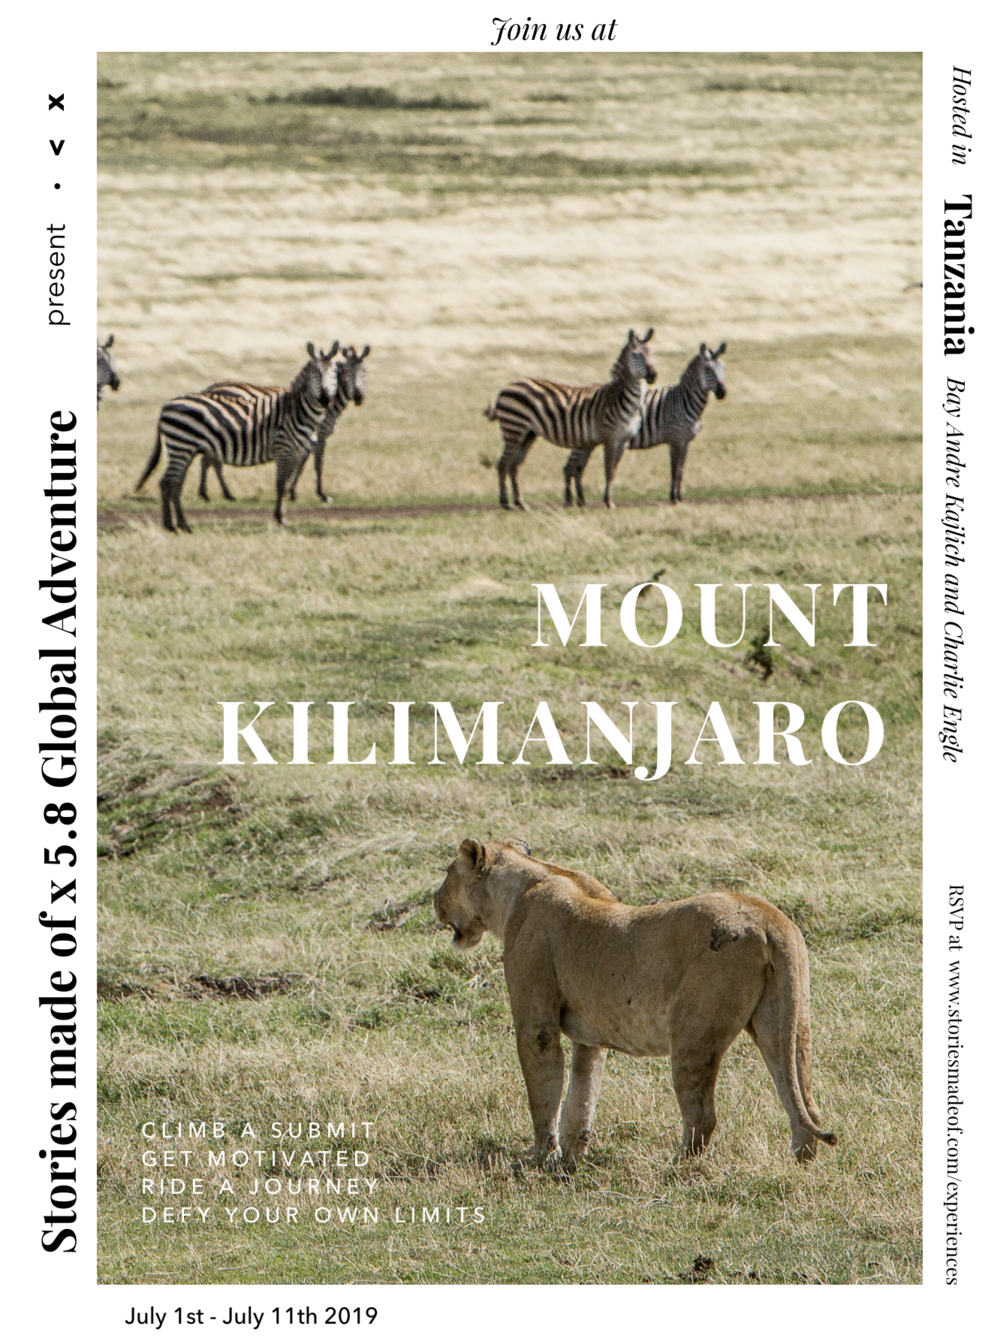 mt. kilimanjaro + safari, tanzania. - Join ultra-endurance and extreme athletes Andre Kajlich and Charlie Engle for this lifetime experience.